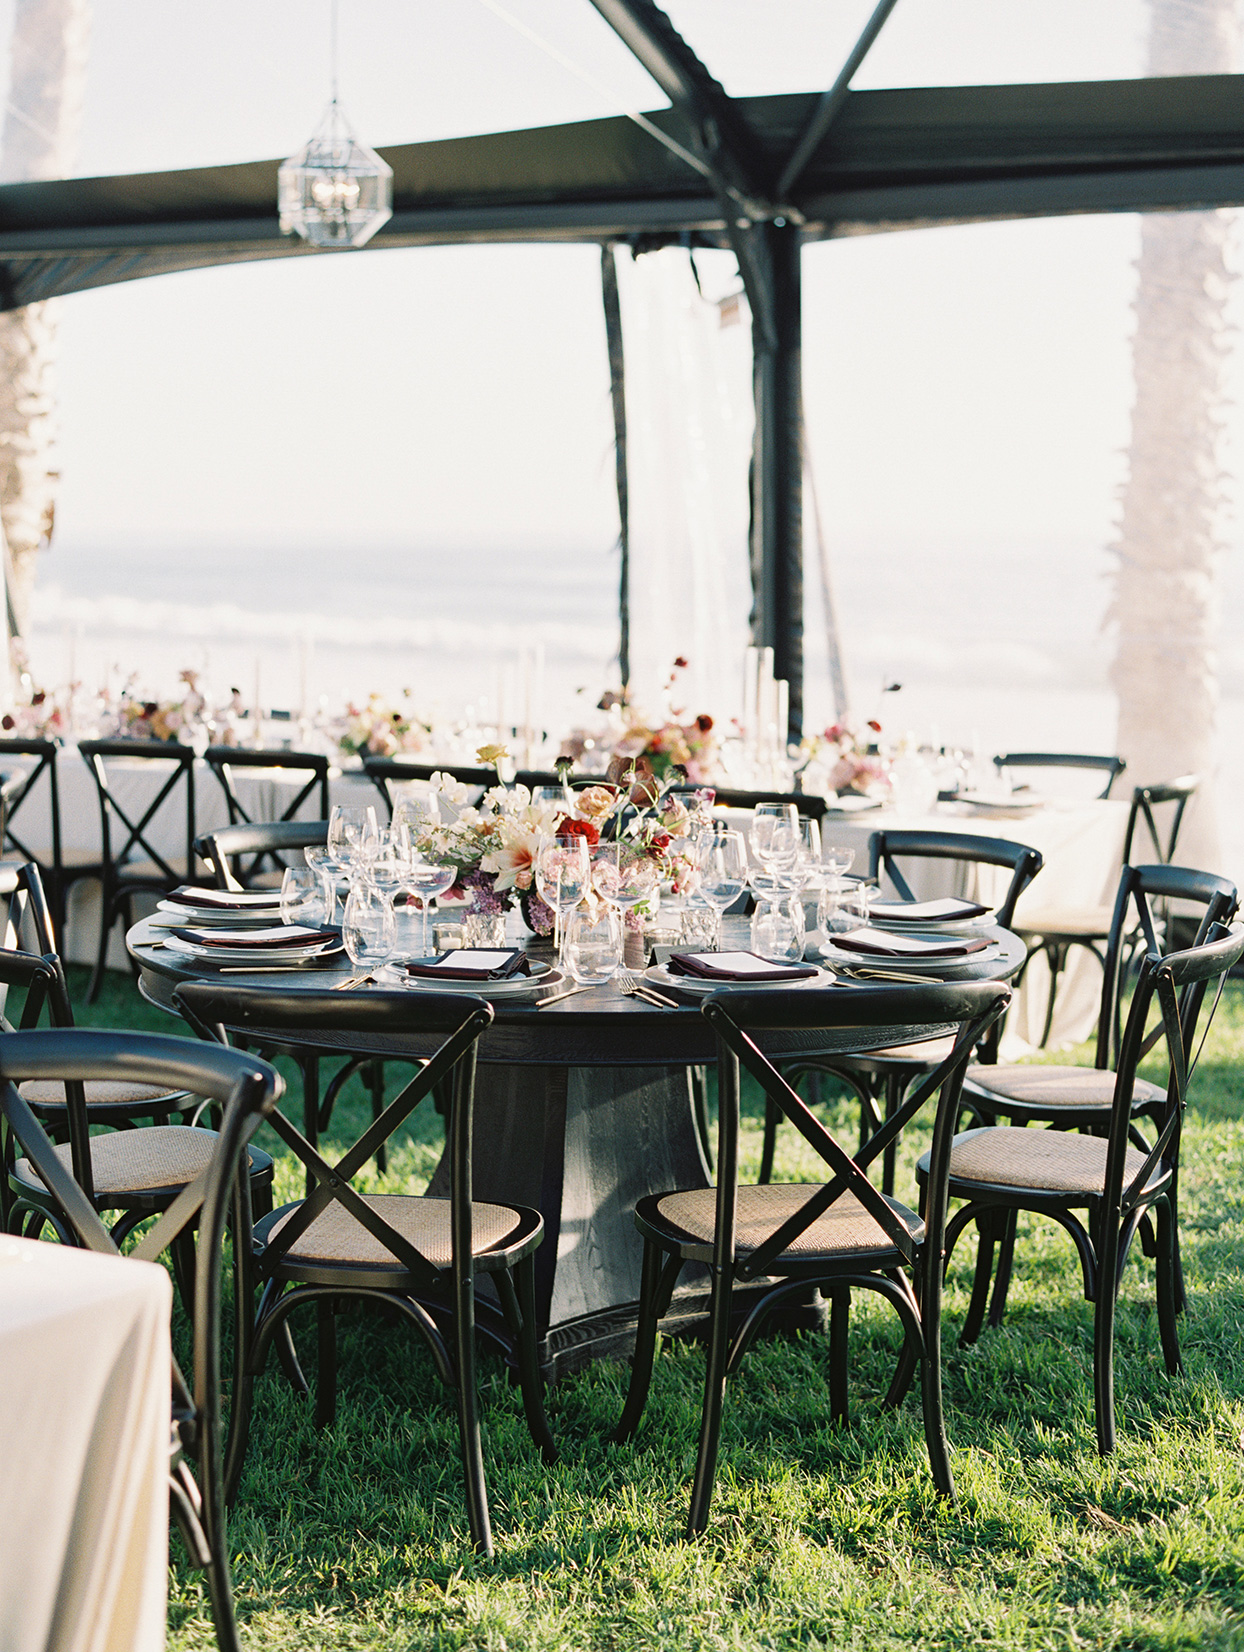 round black reception table with chairs on lawn